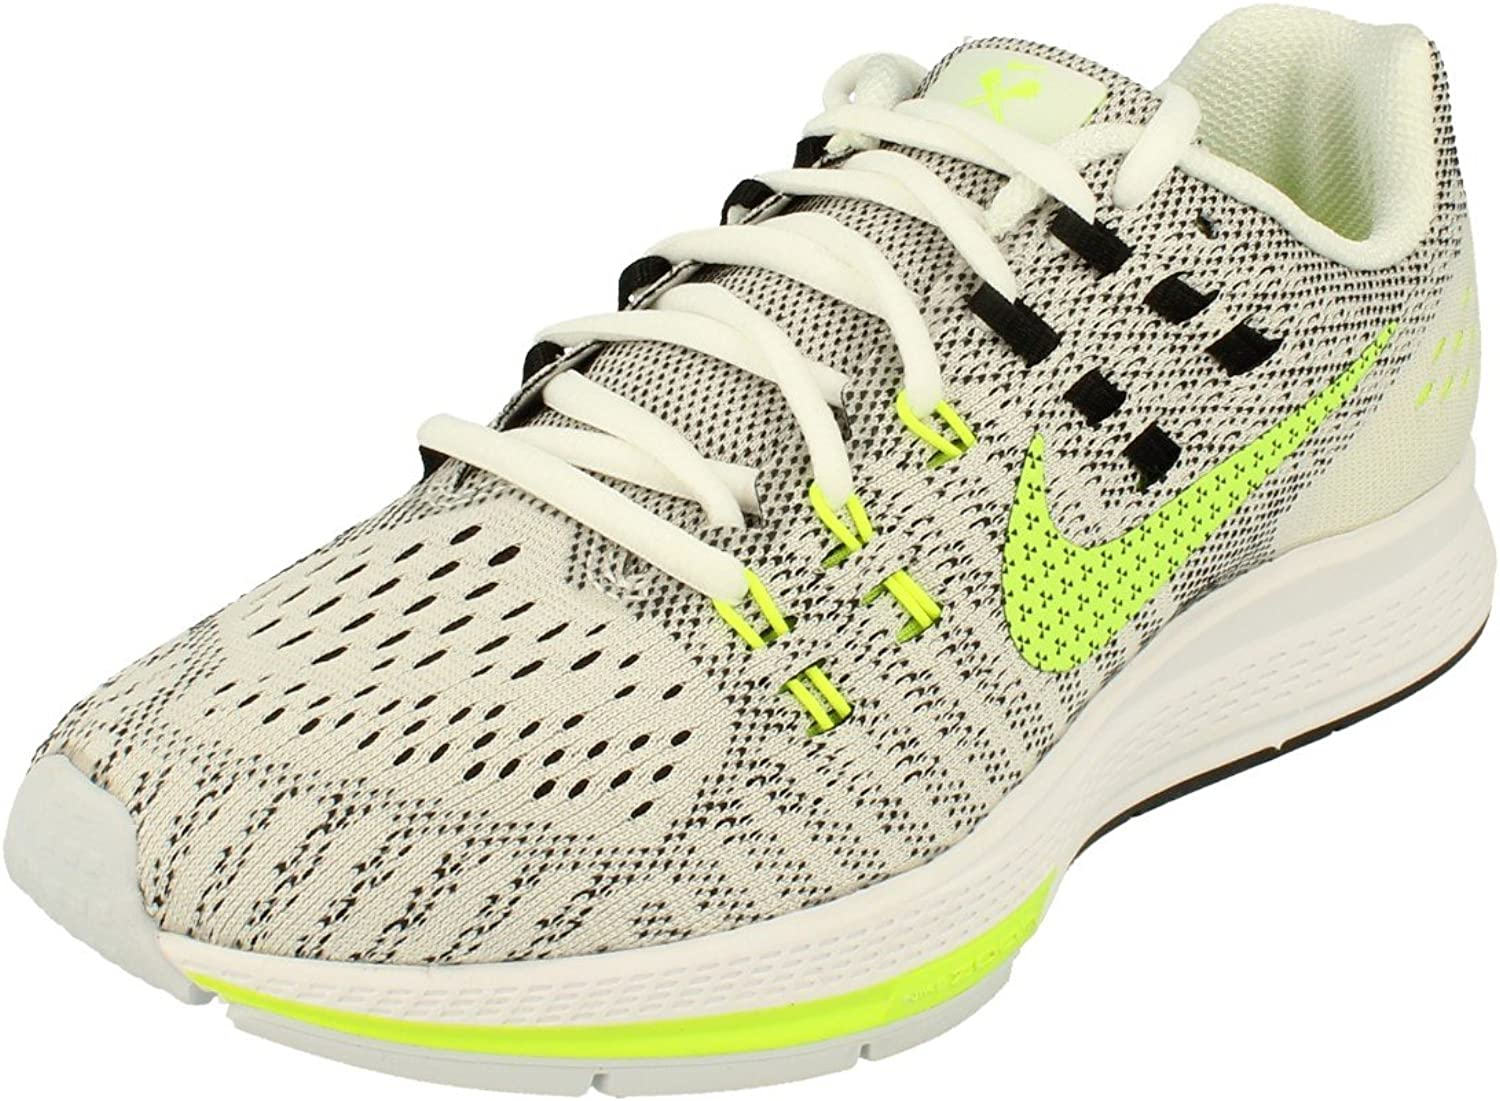 Nike Wmns Air Zoom Structure 19 CP, Zapatillas de Running para Mujer, Blanco (White/Volt-Black), 37 1/2 EU: Amazon.es: Zapatos y complementos